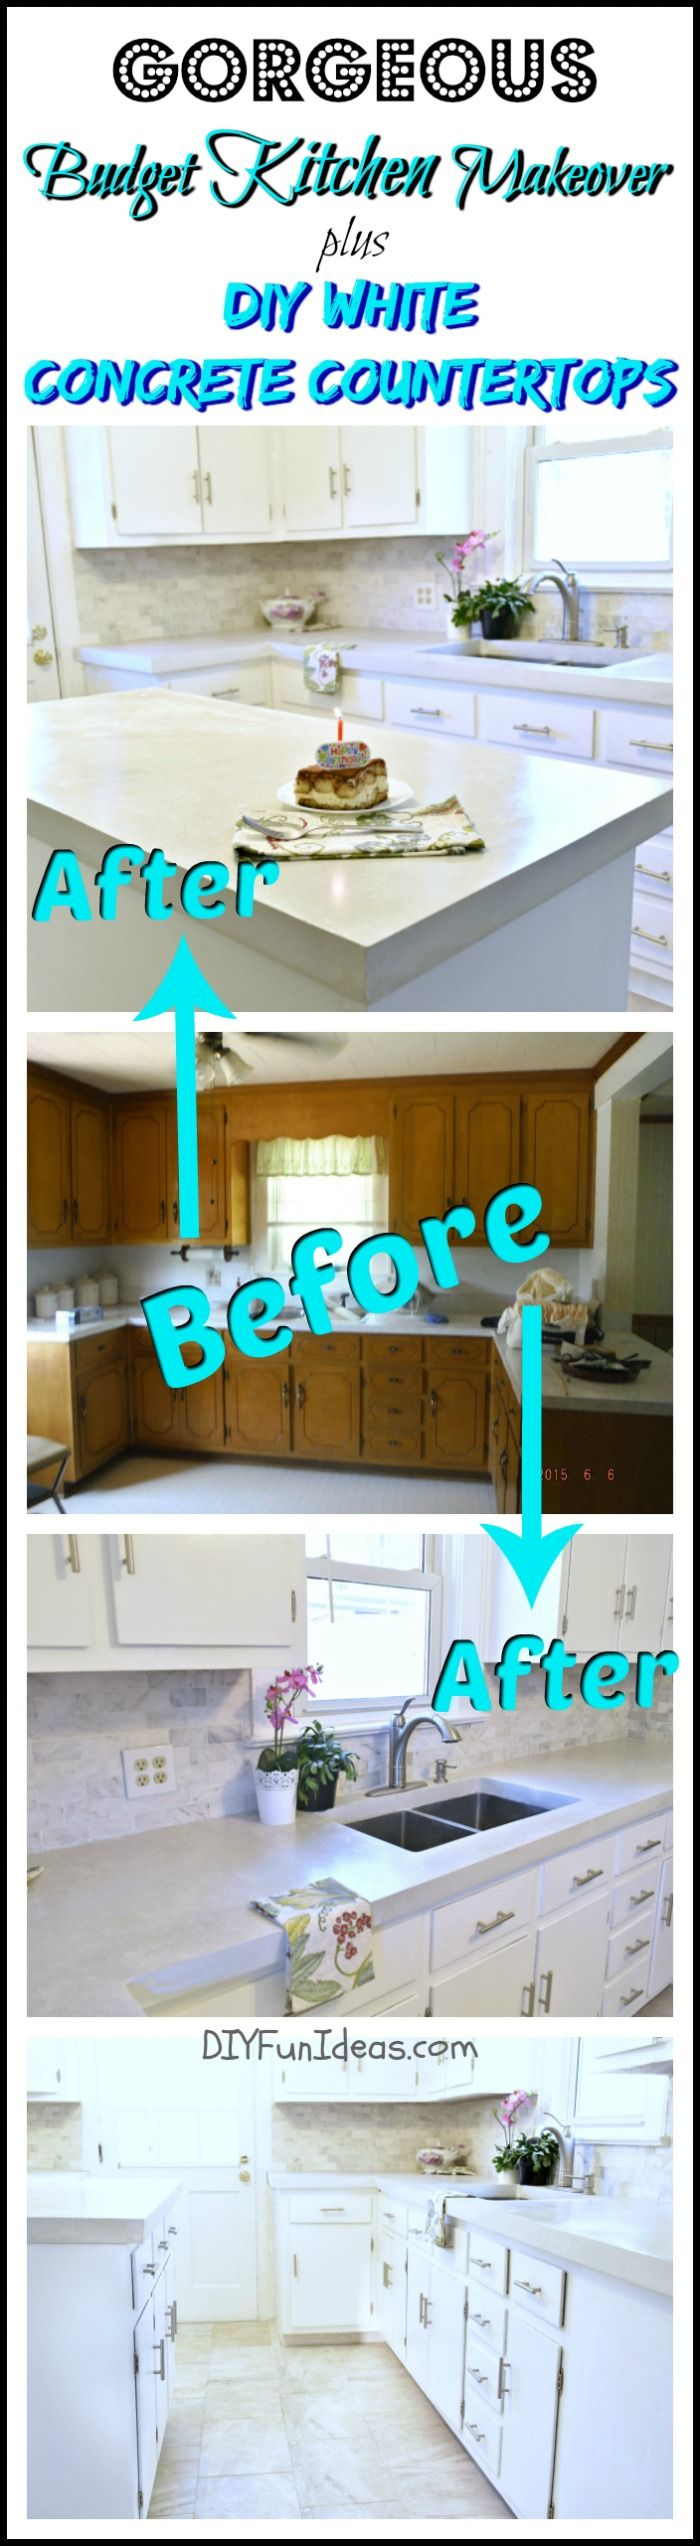 Transform your old kitchen. It's easy! Learn here how the cabinets were refinished for a beautiful high-end look on a low-end budget. Plus how to get beautiful DIY pour-in-place white concrete countertops and save thousands! .......one of the most popular pins